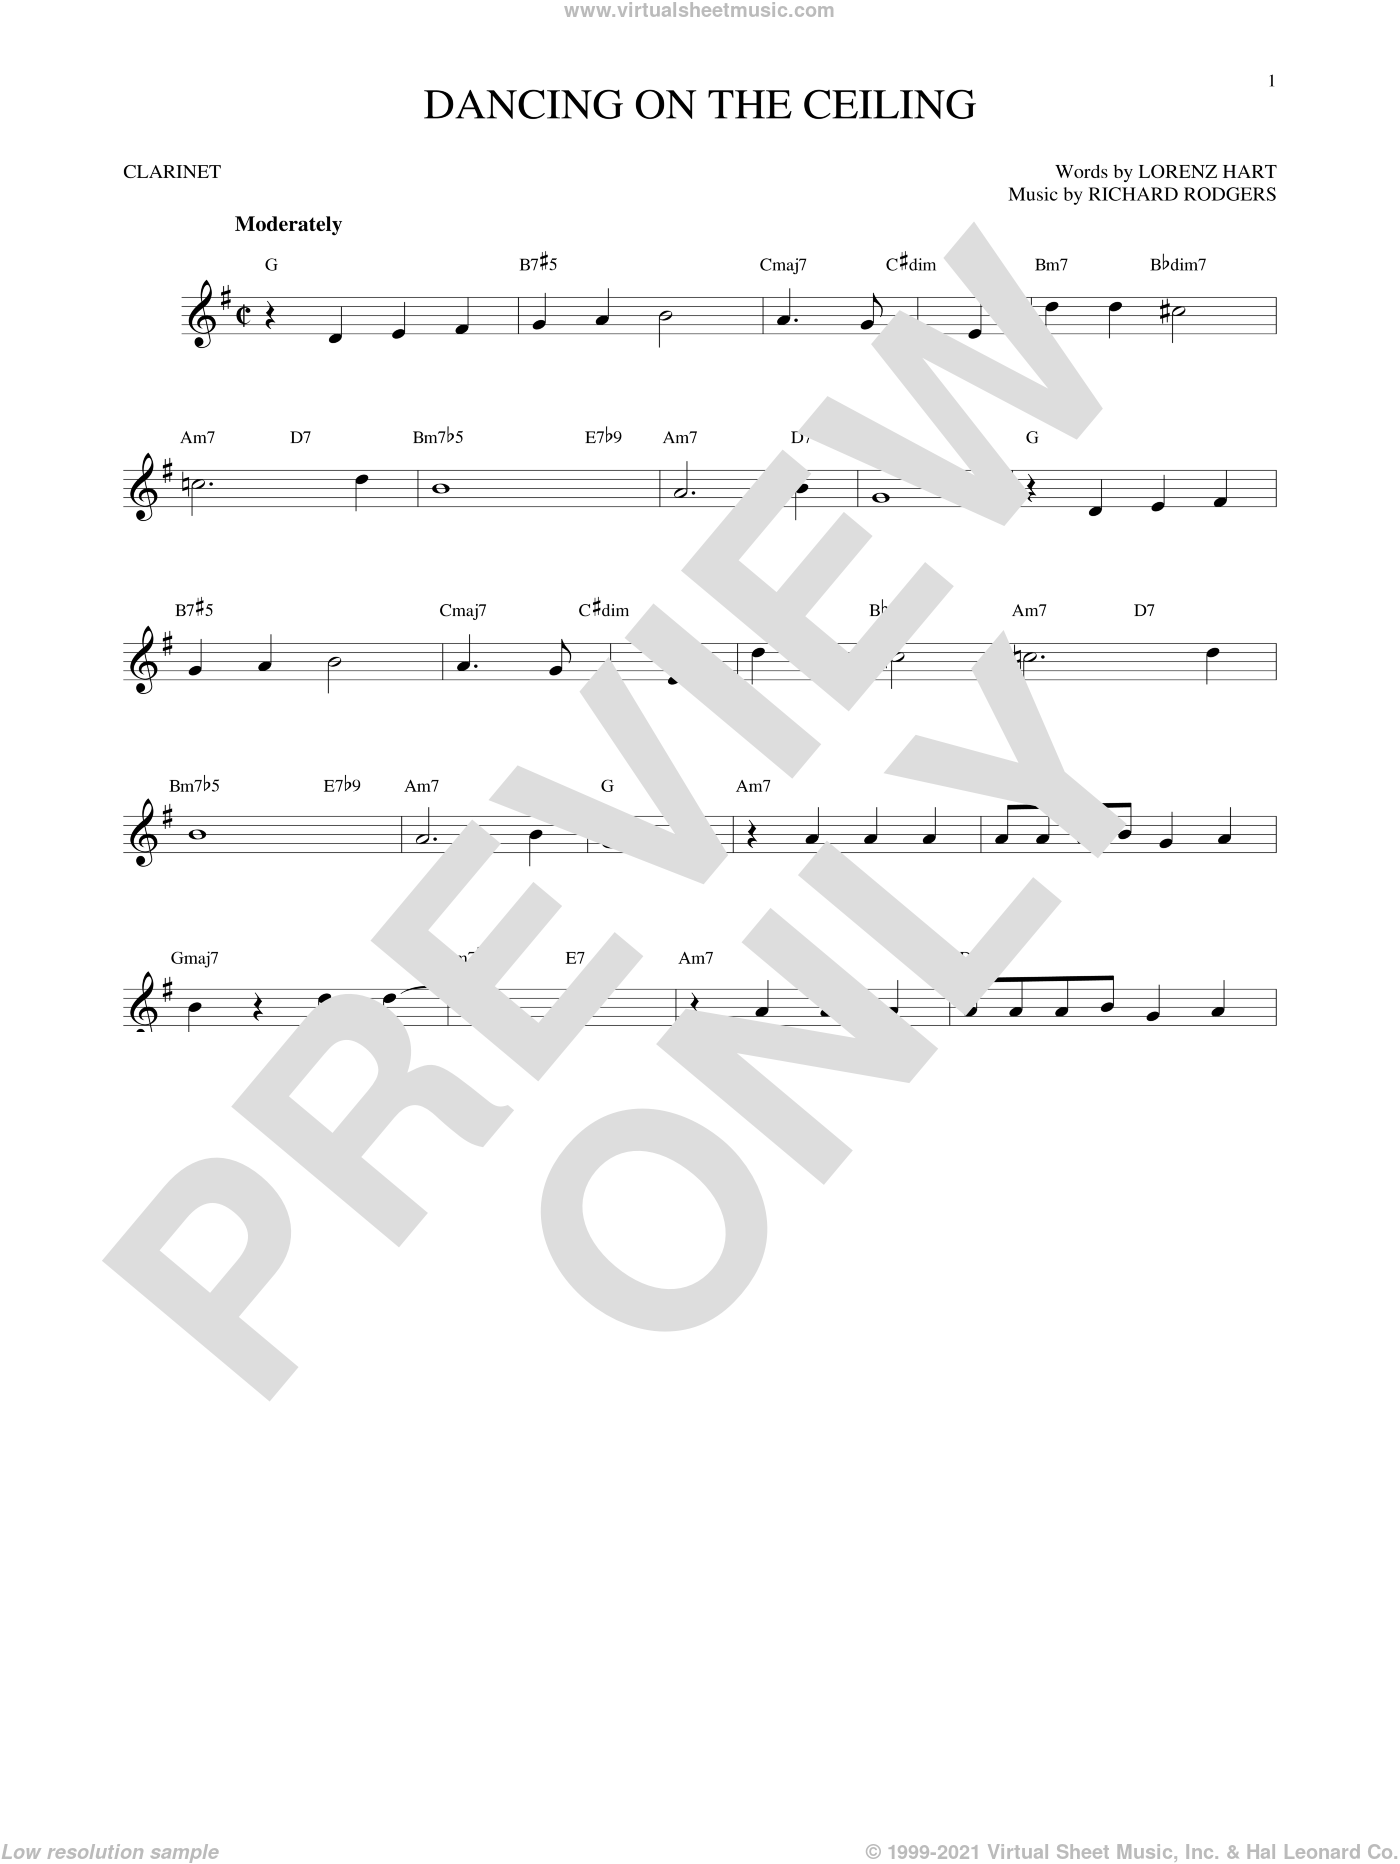 Dancing On The Ceiling sheet music for clarinet solo by Rodgers & Hart, Lorenz Hart and Richard Rodgers, intermediate skill level